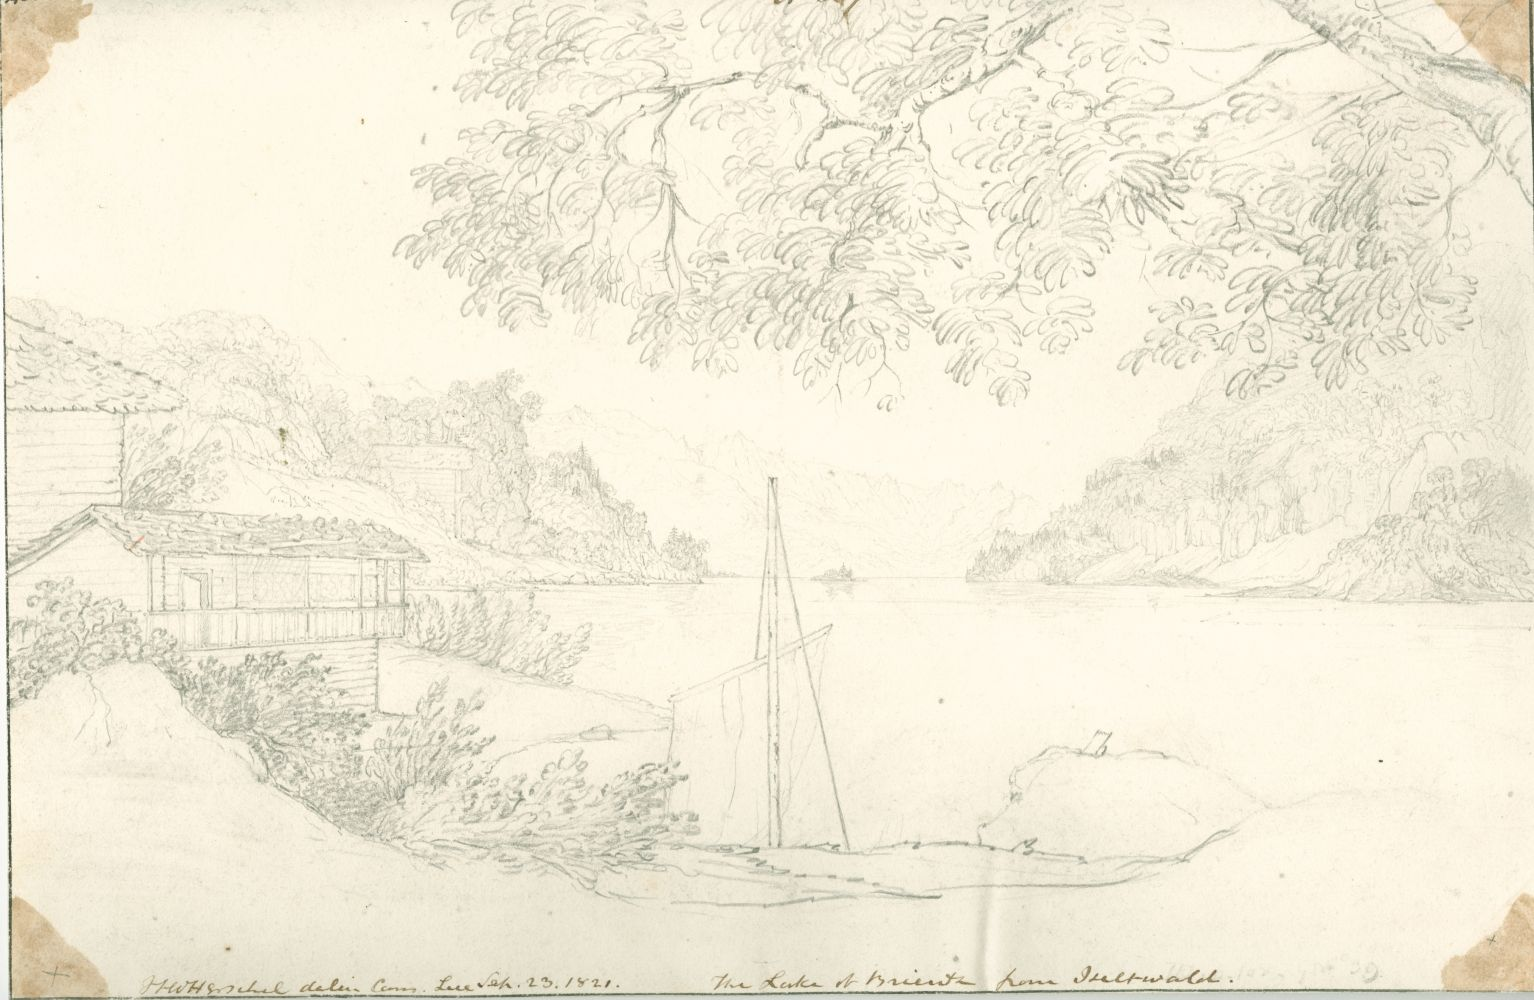 """Sir John Frederick William HERSCHEL (English, 1792-1872) """"No 507 The Lake of Brienz from Iseltwald"""", 23 September 1821 Camera lucida drawing, pencil on paper 20.3 x 30.6 cm Numbered, signed, dated and titled """"No 507 / JFW Herschel delin. Cam. Luc. / Sep. 23, 1821. / The Lake of Brienz from Iseltwald."""" in ink. Inscribed """"Iseltwald"""" two times in pencil on verso"""